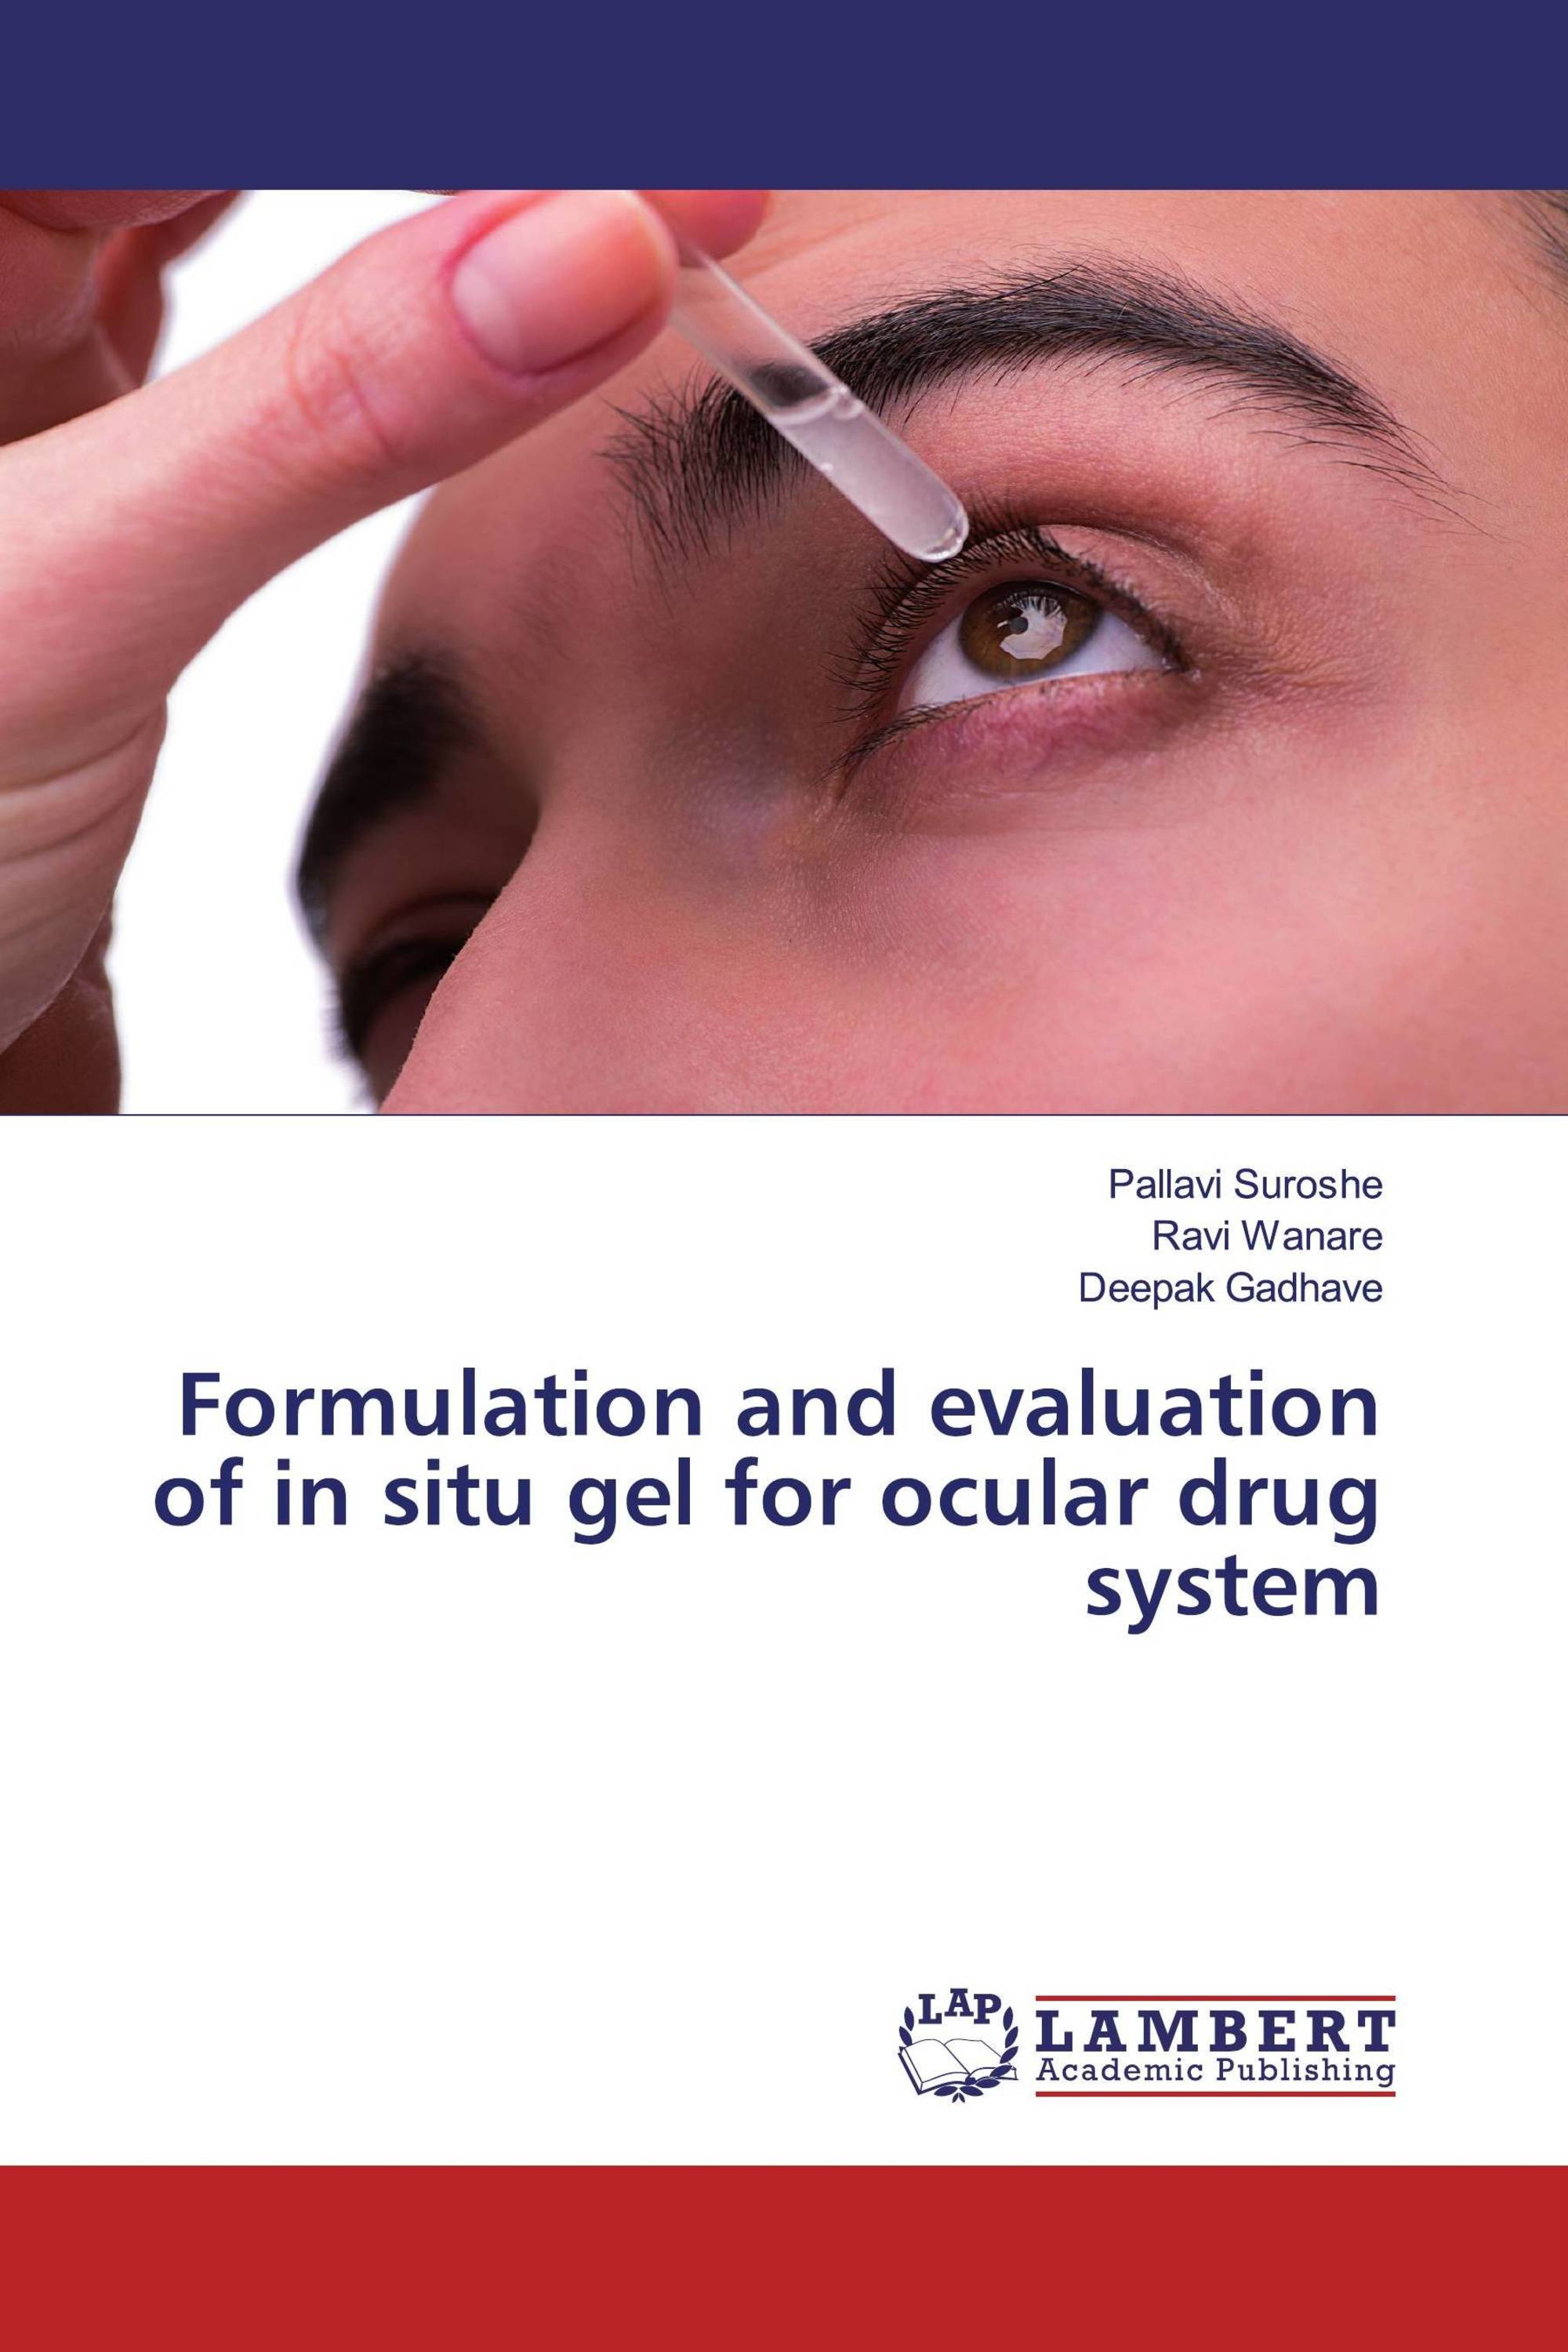 Formulation and evaluation of in situ gel for ocular drug